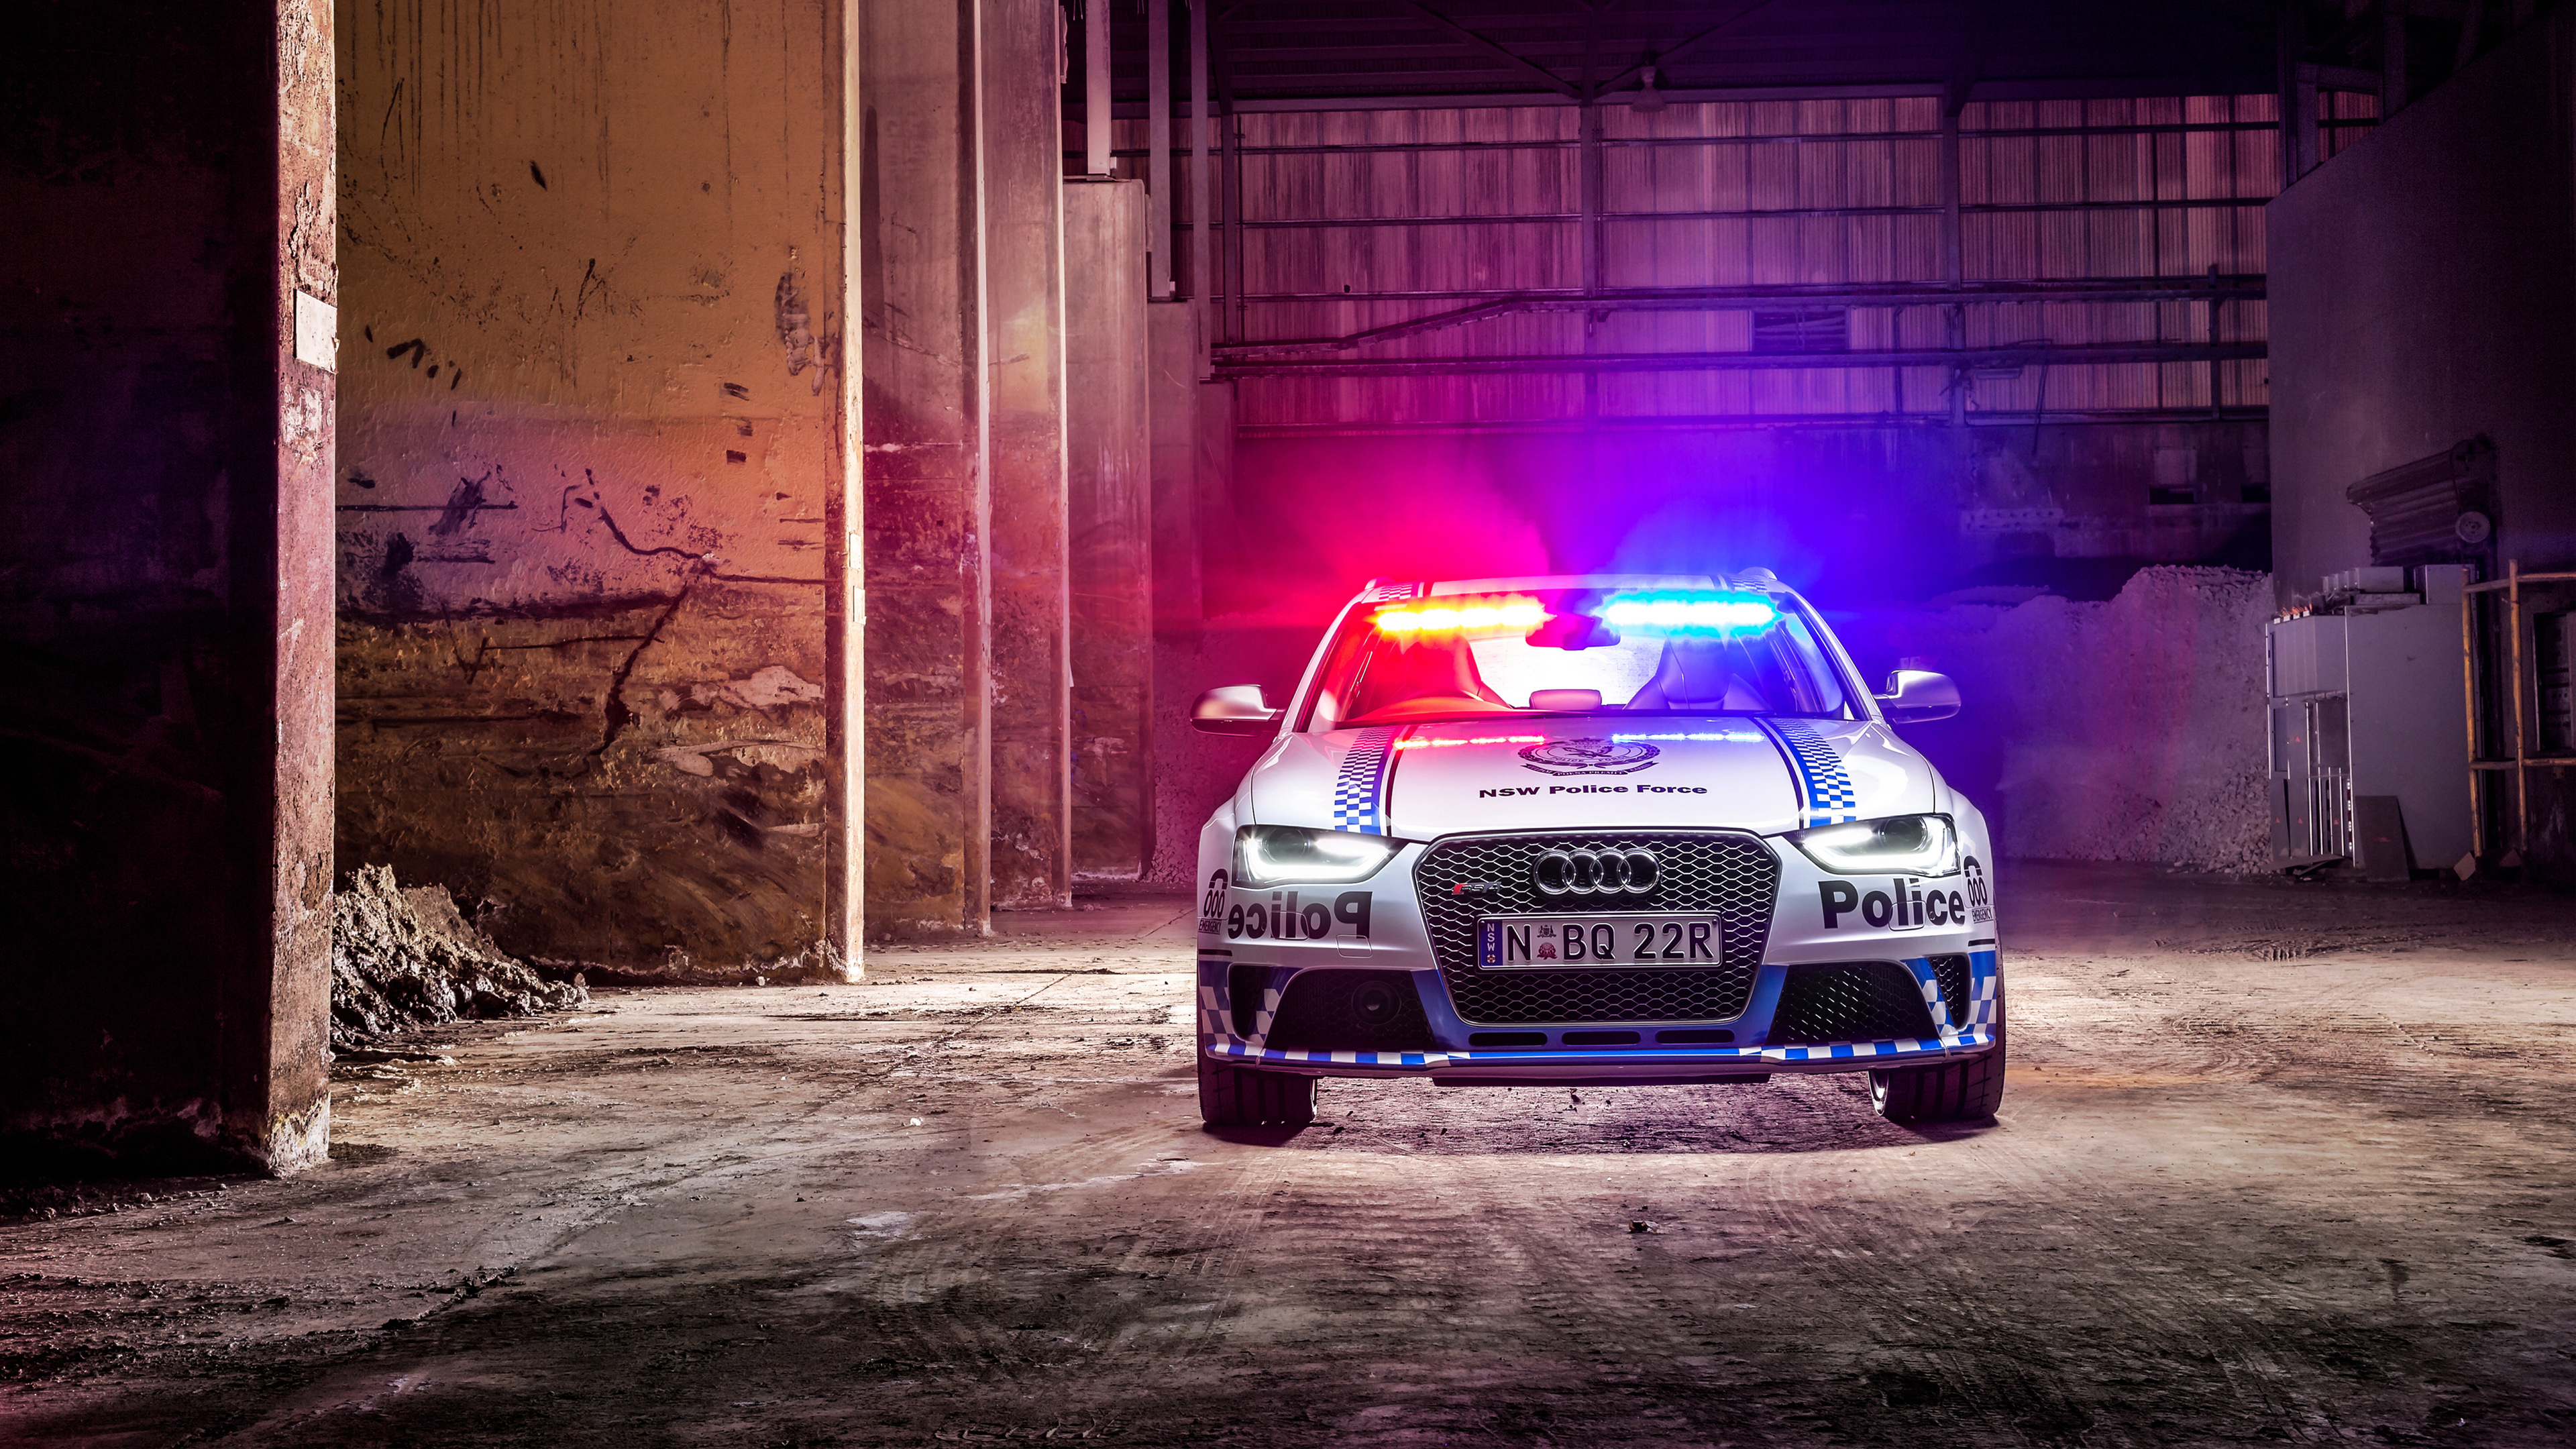 2015 Audi Rs4 Avant Police Wallpaper Hd Car Wallpapers